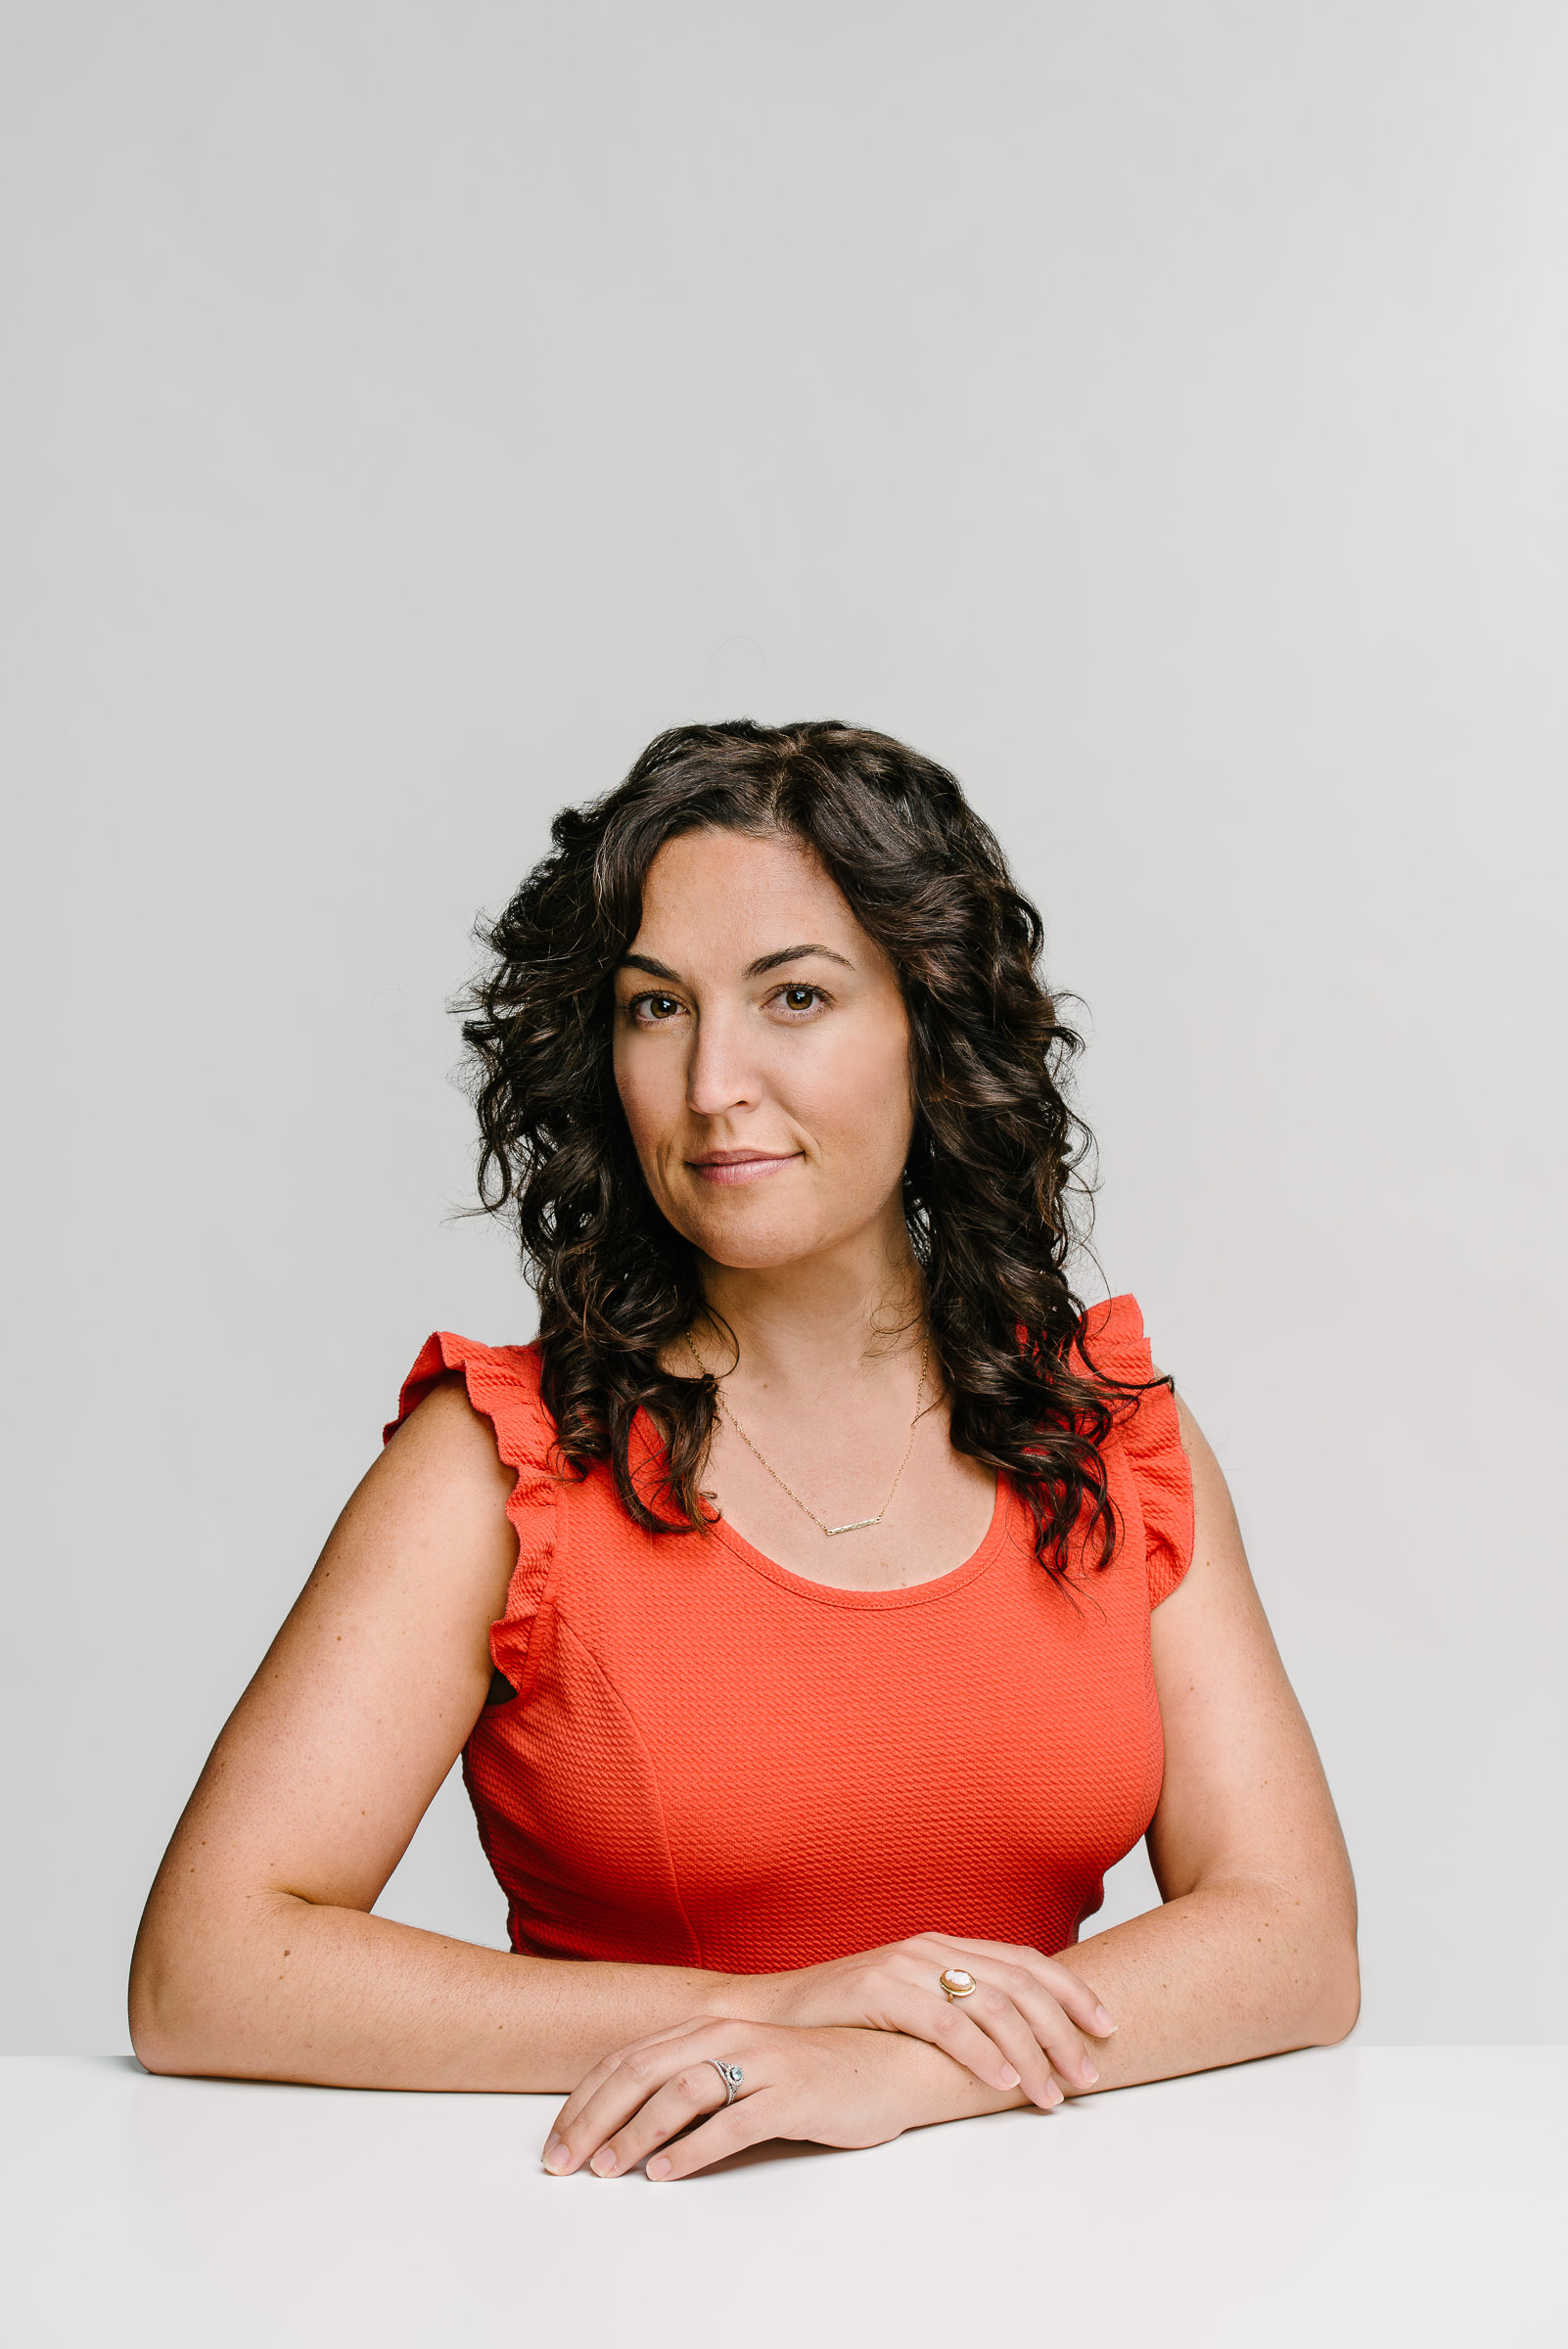 Executive headshot against neutral backdrop - Lacy Jansson